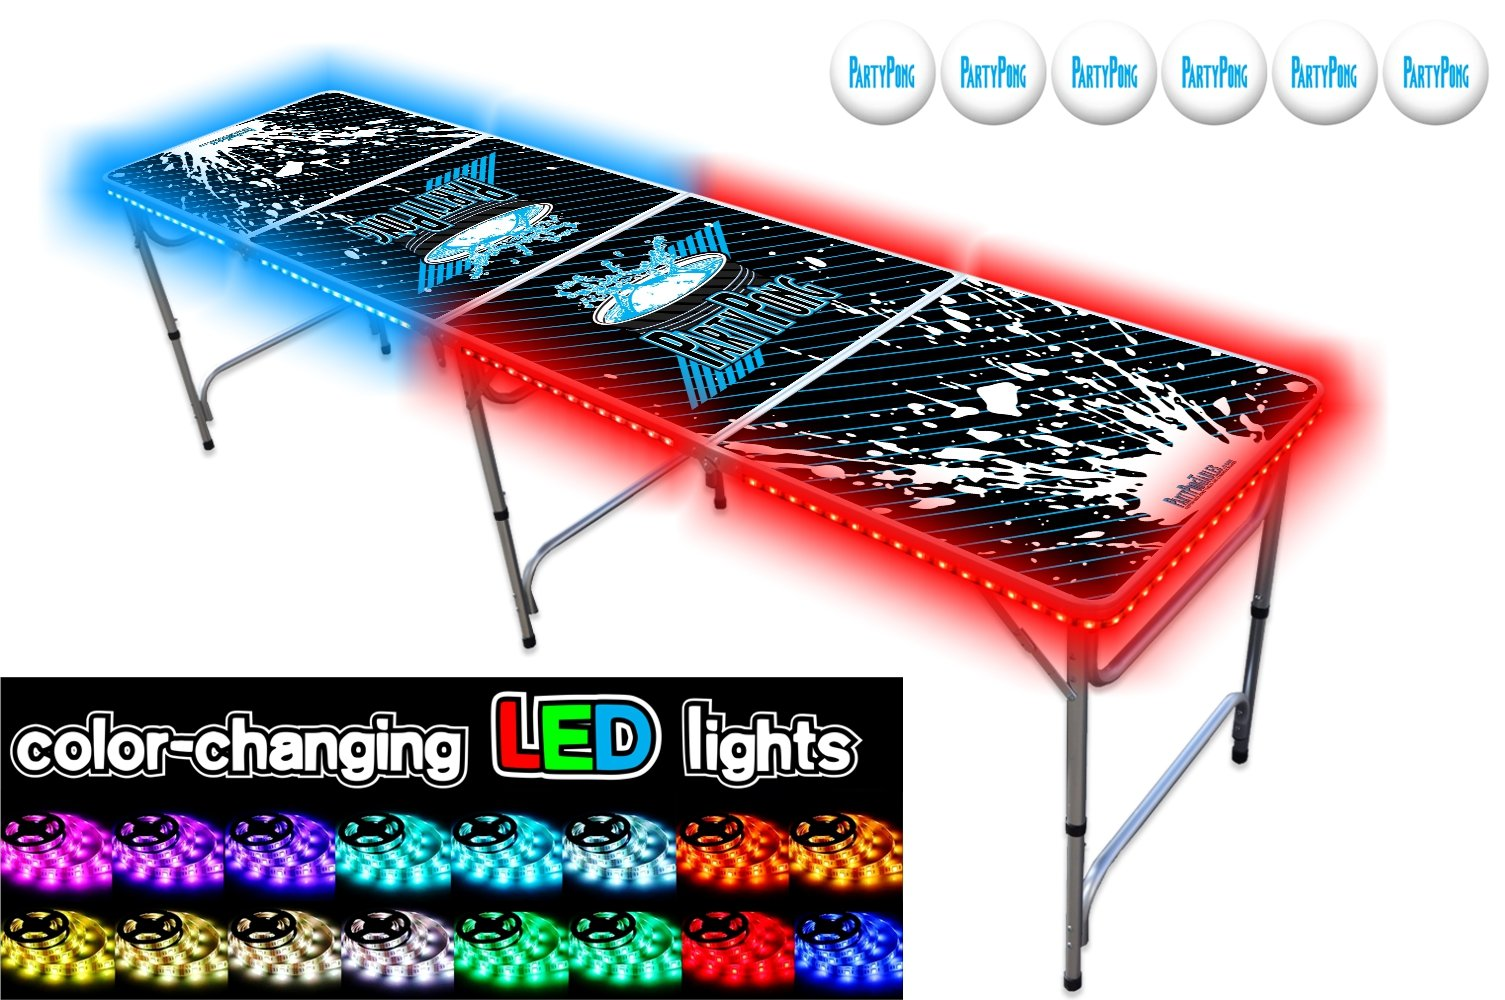 PartyPongTables.com 8-Foot Beer Pong Table with LED Glow Lights - Splash Edition by PartyPongTables